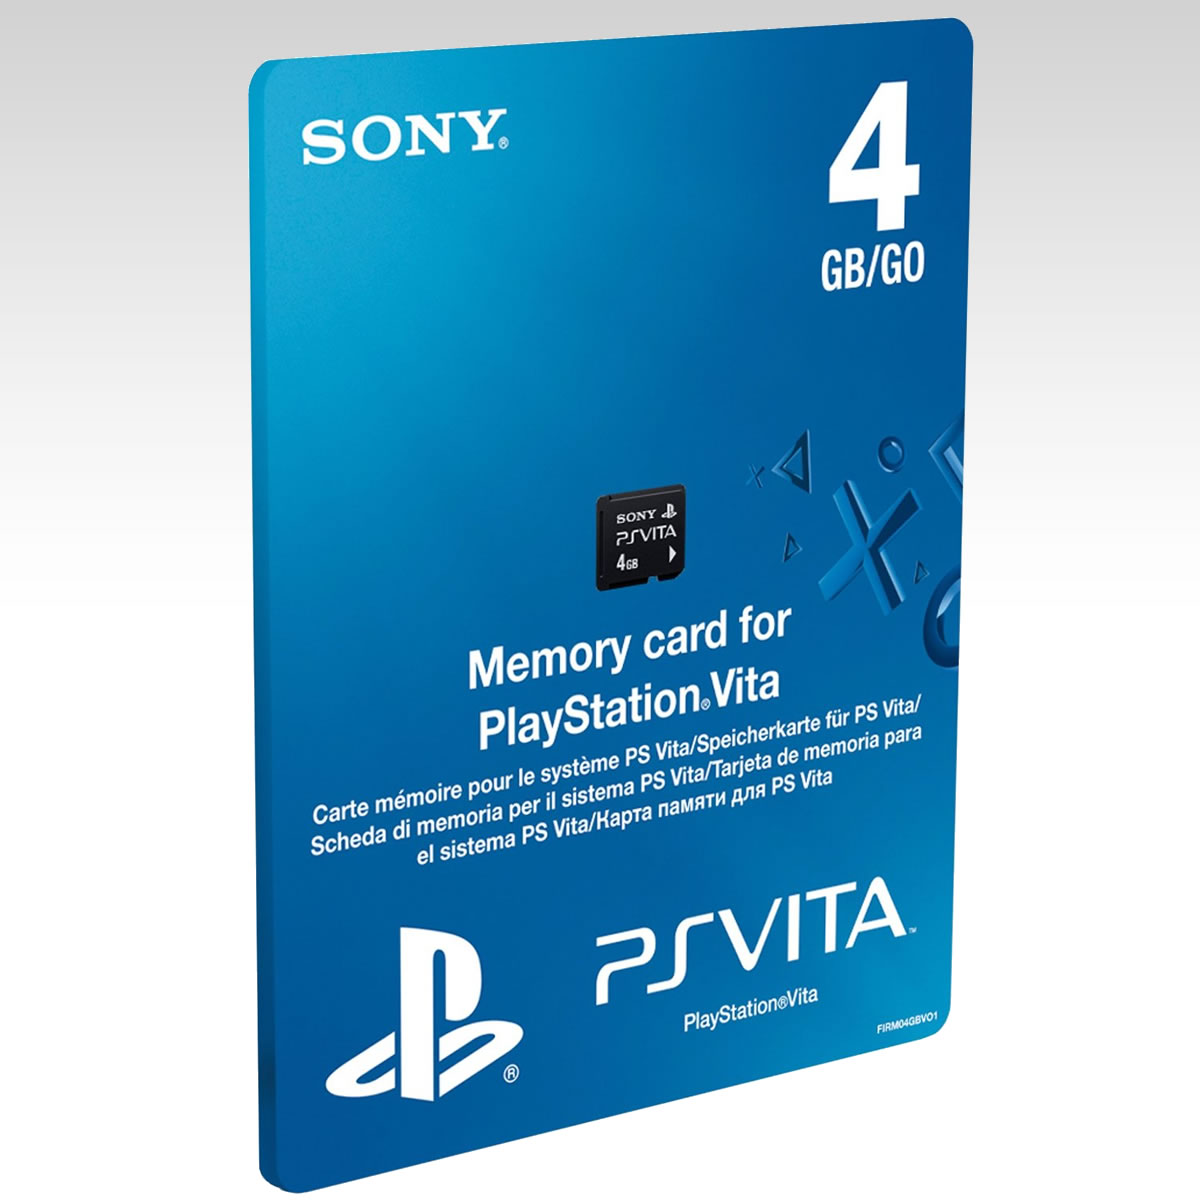 SONY OFFICIAL PS VITA MEMORY CARD 4GB - SONY PS VITA ΕΠΙΣΗΜΗ ΚΑΡΤΑ ΜΝΗΜΗΣ 4GB (PS VITA)